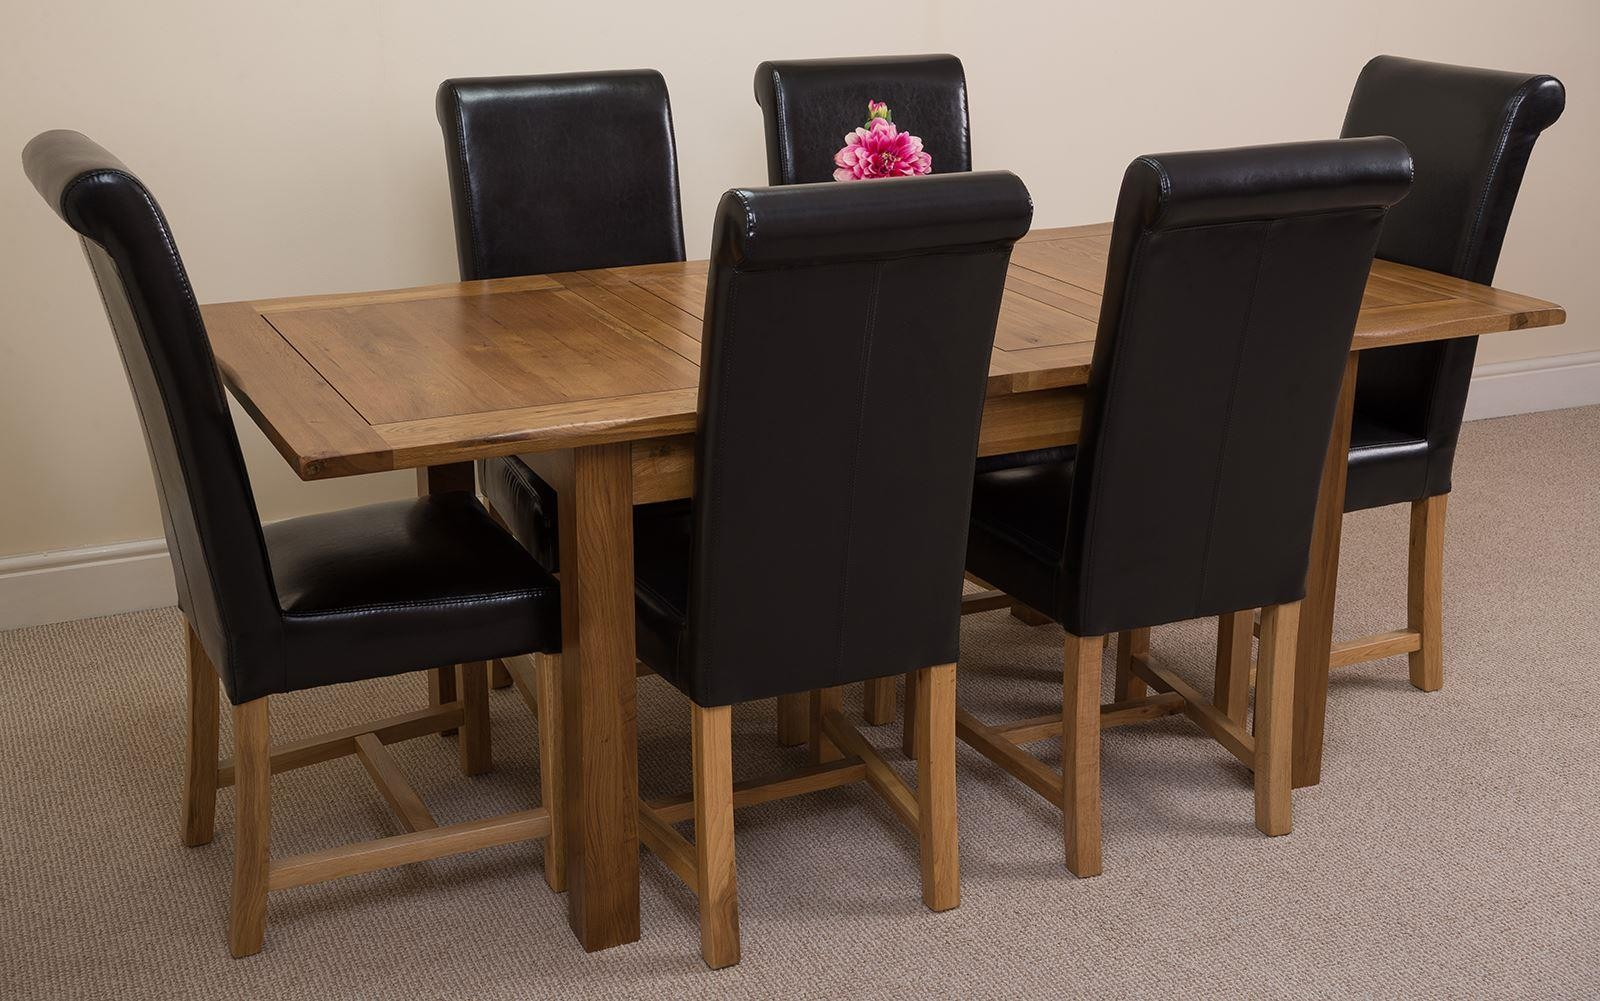 Cotswold Rustic Solid Oak 132cm-198cm Extending Farmhouse Dining Table with 6 Washington Dining Chairs [Burgundy Leather]